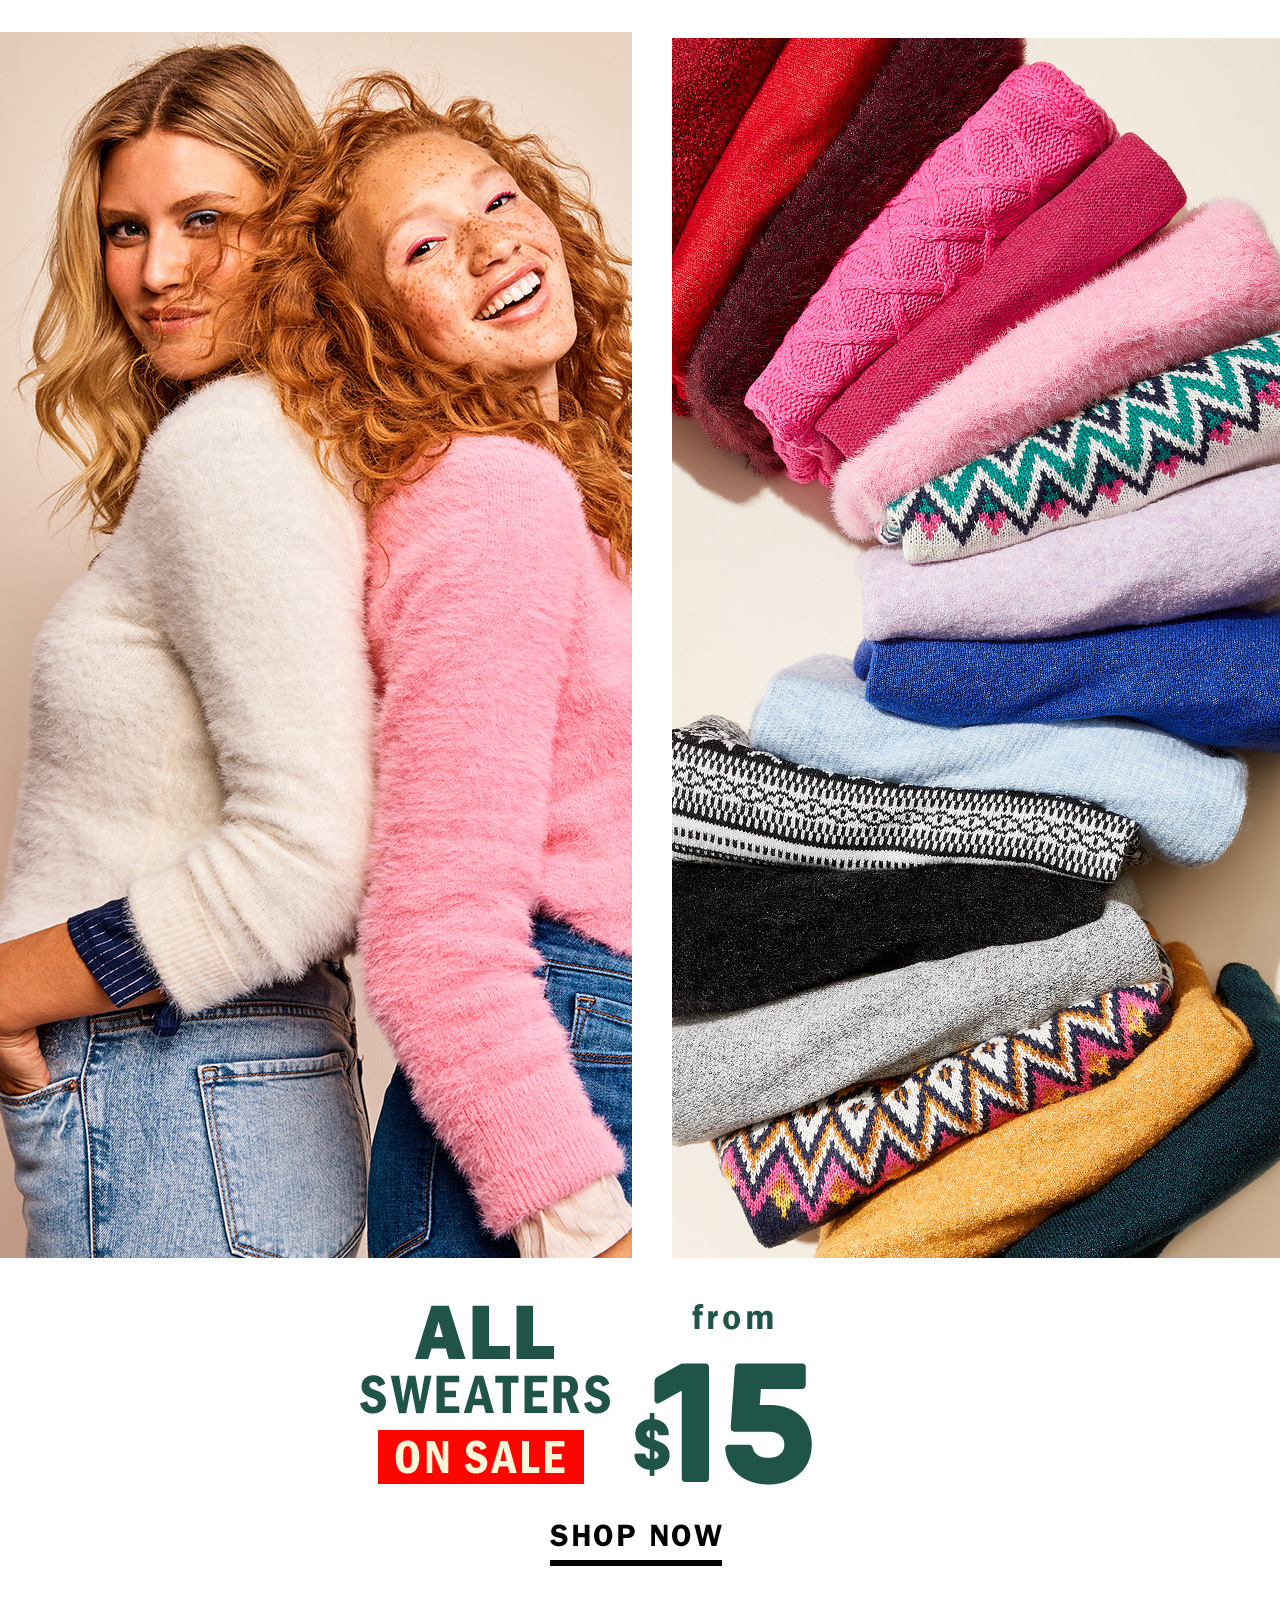 ALL SWEATERS ON SALE